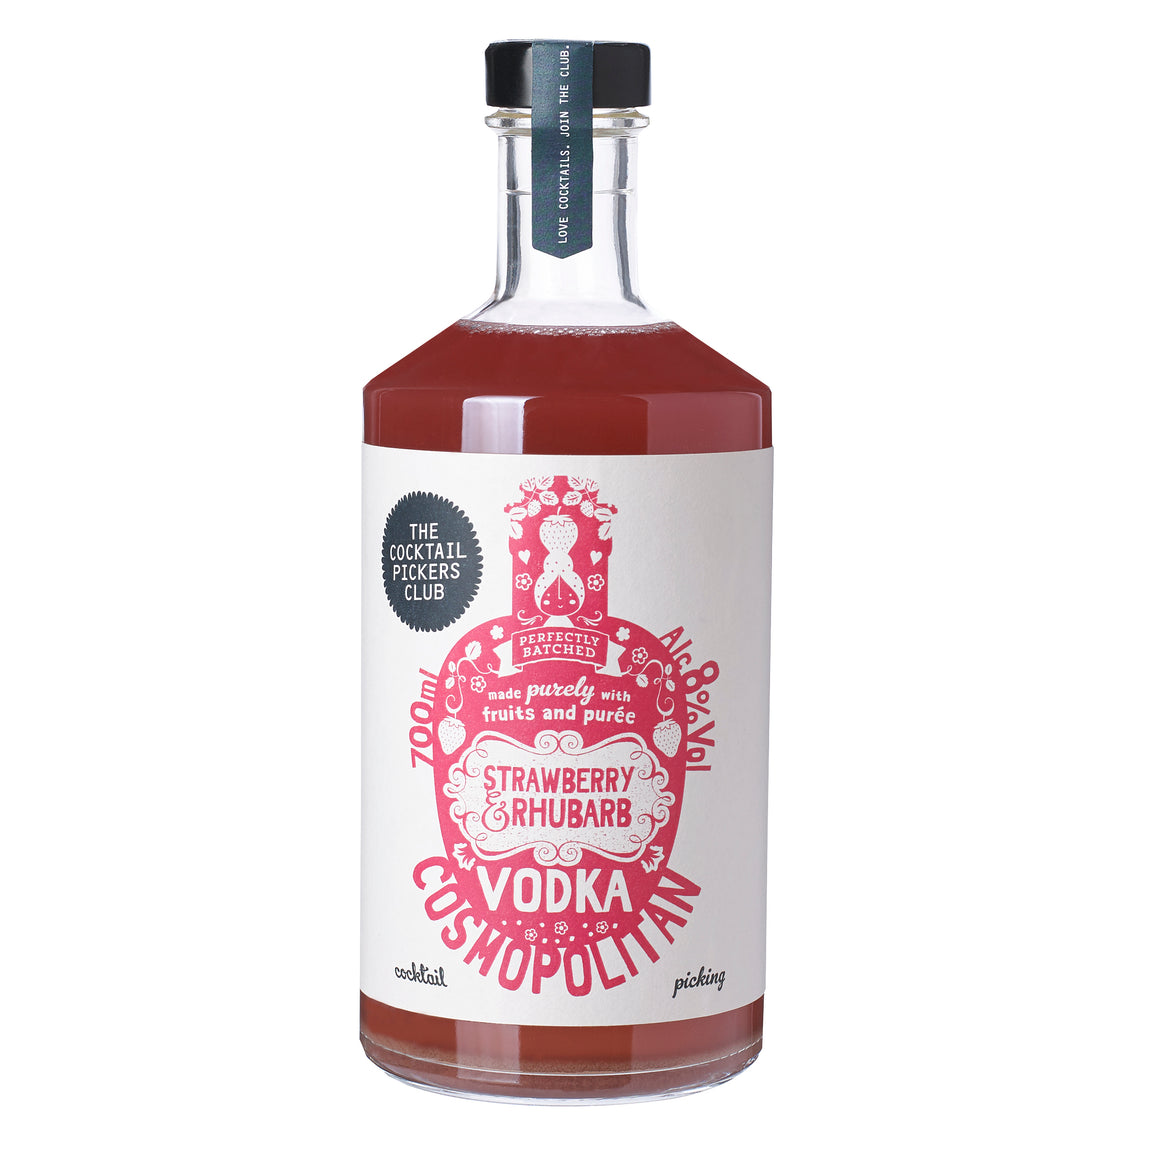 Strawberry & Rhubarb Vodka Cosmopolitan 700ml